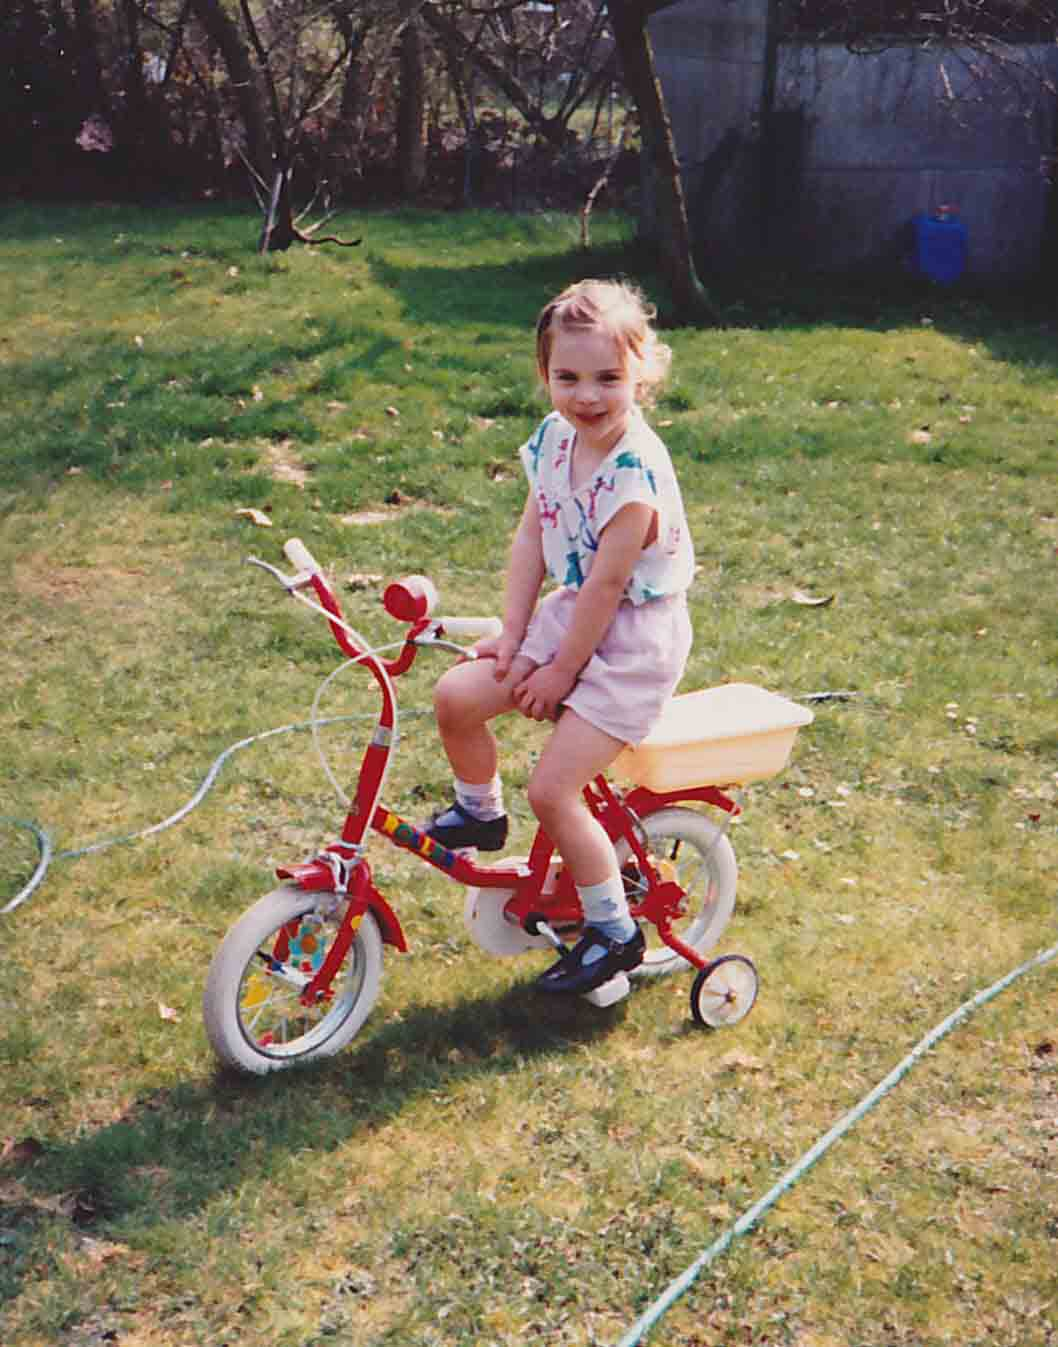 Laura on her Raleigh bicycle